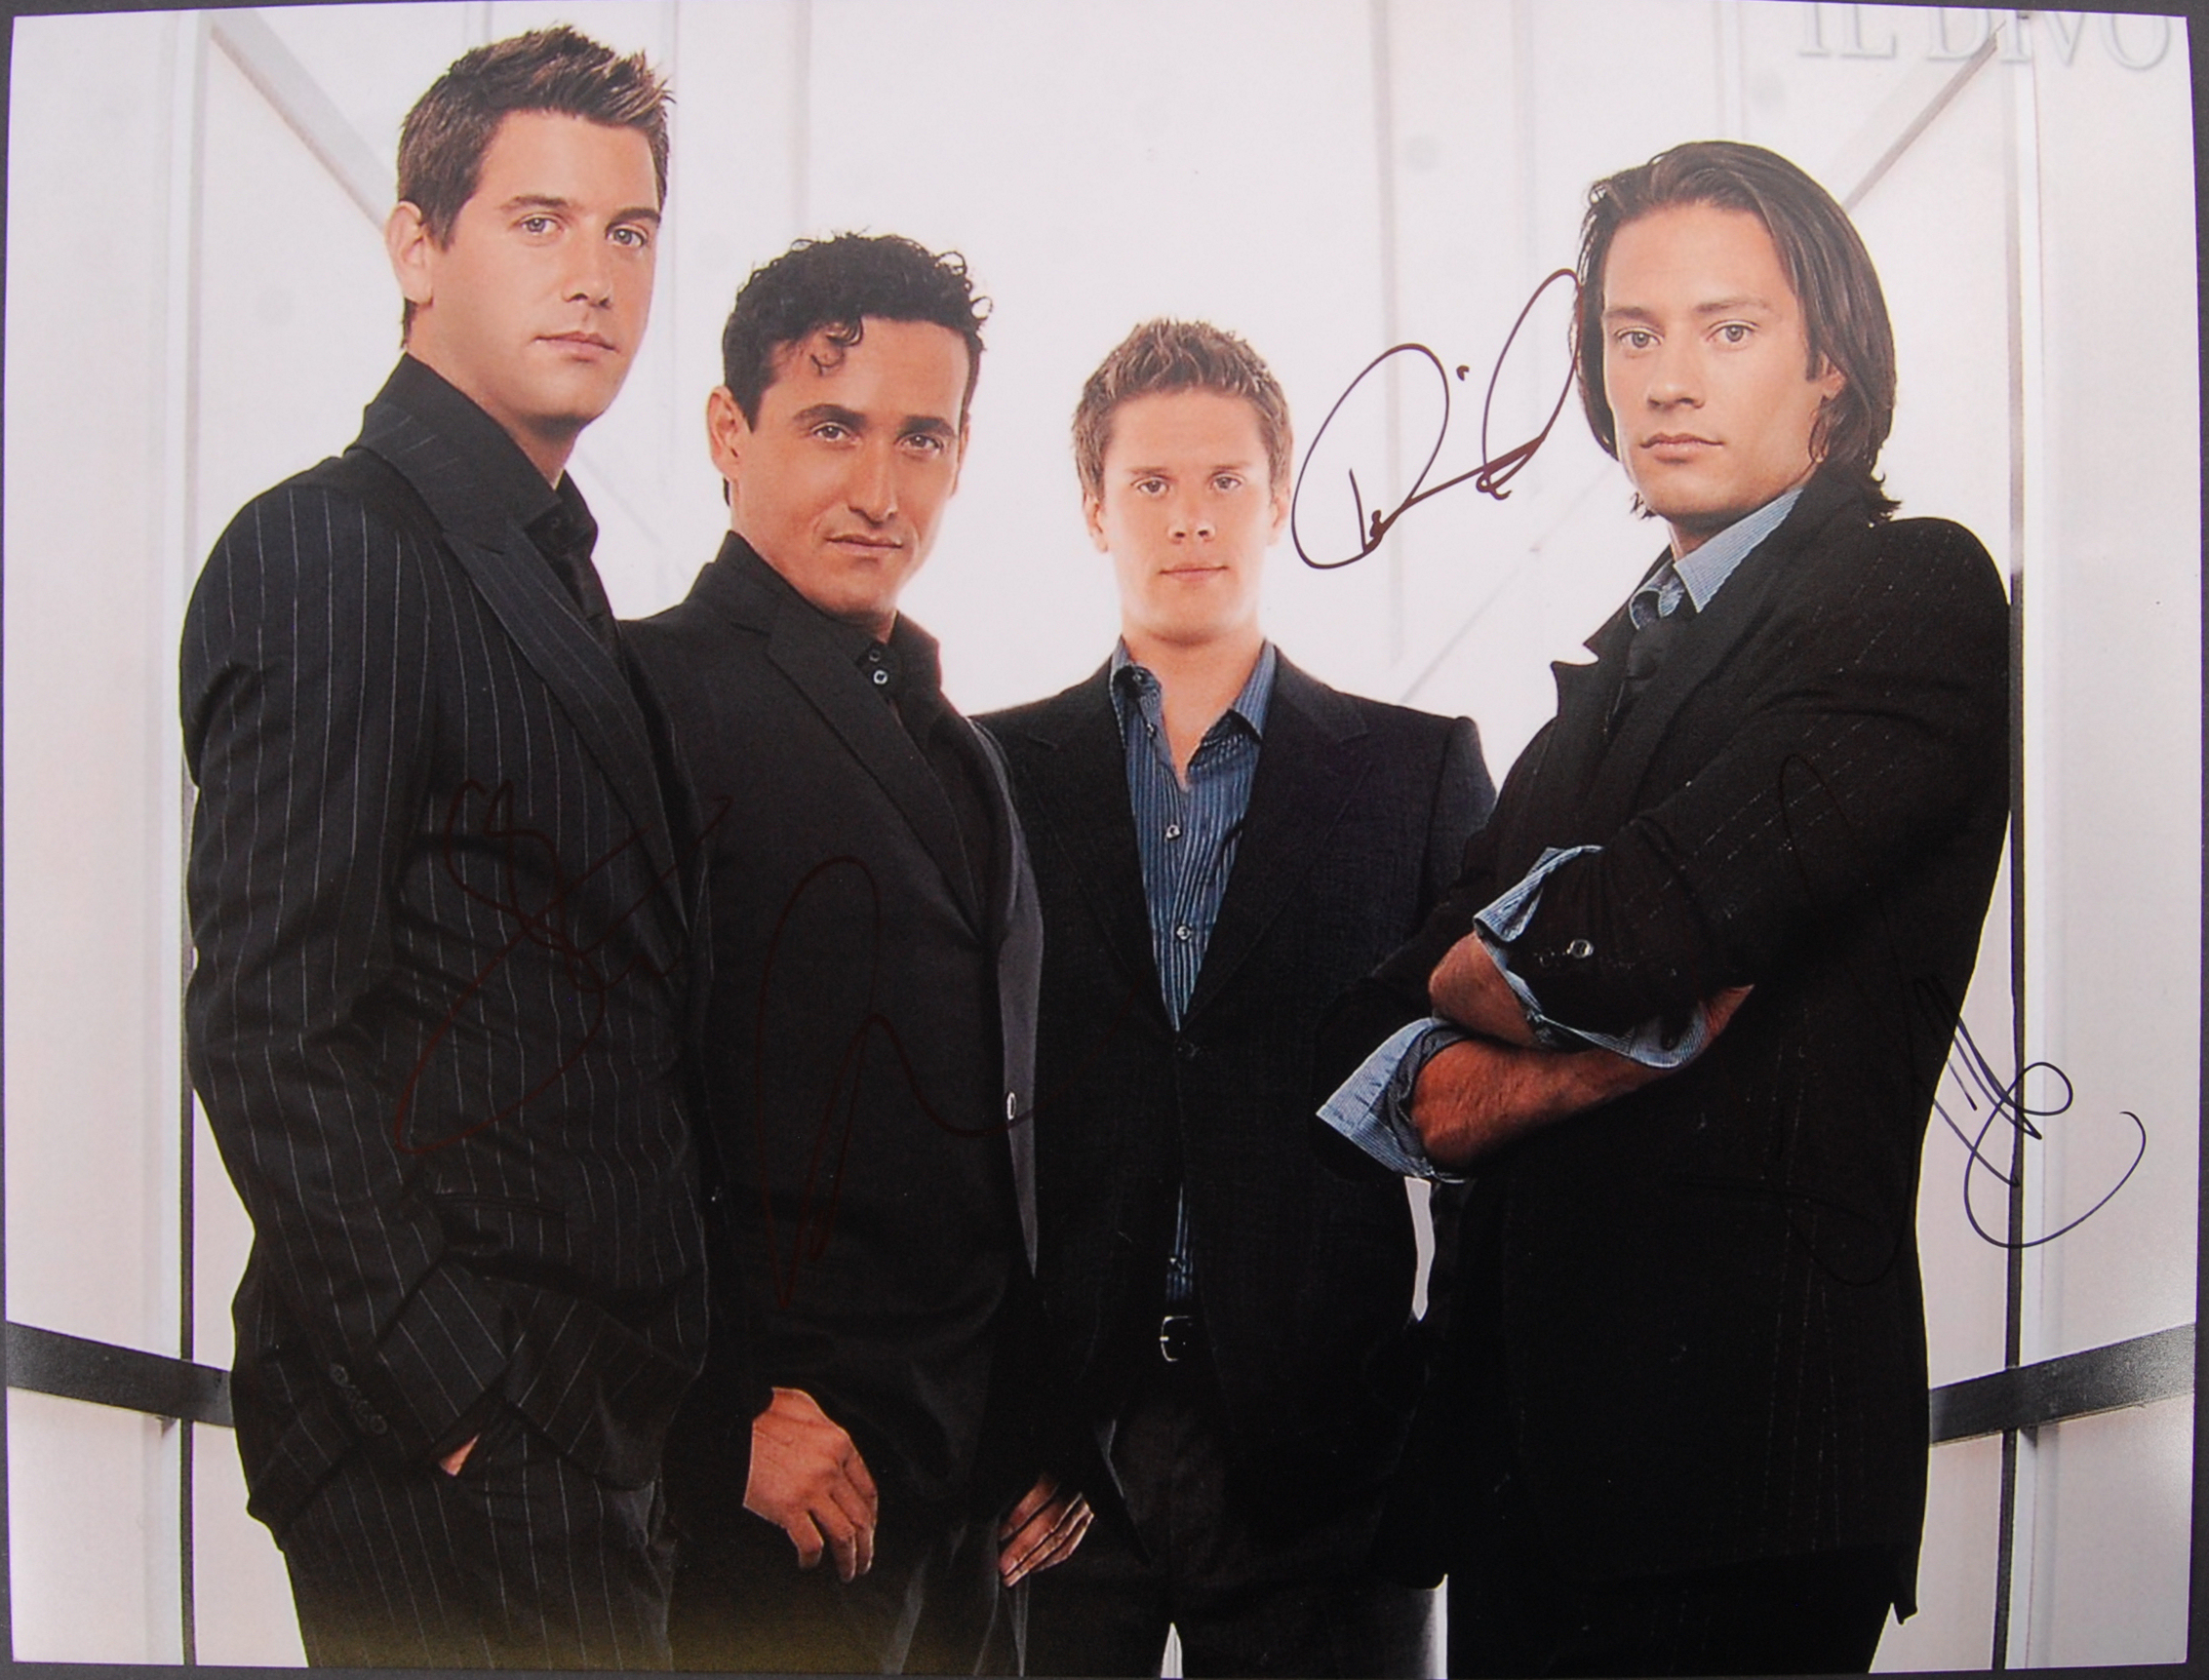 Lot 136 - IL DIVO - FULL BAND AUTOGRAPHED PHOTOGRAPH